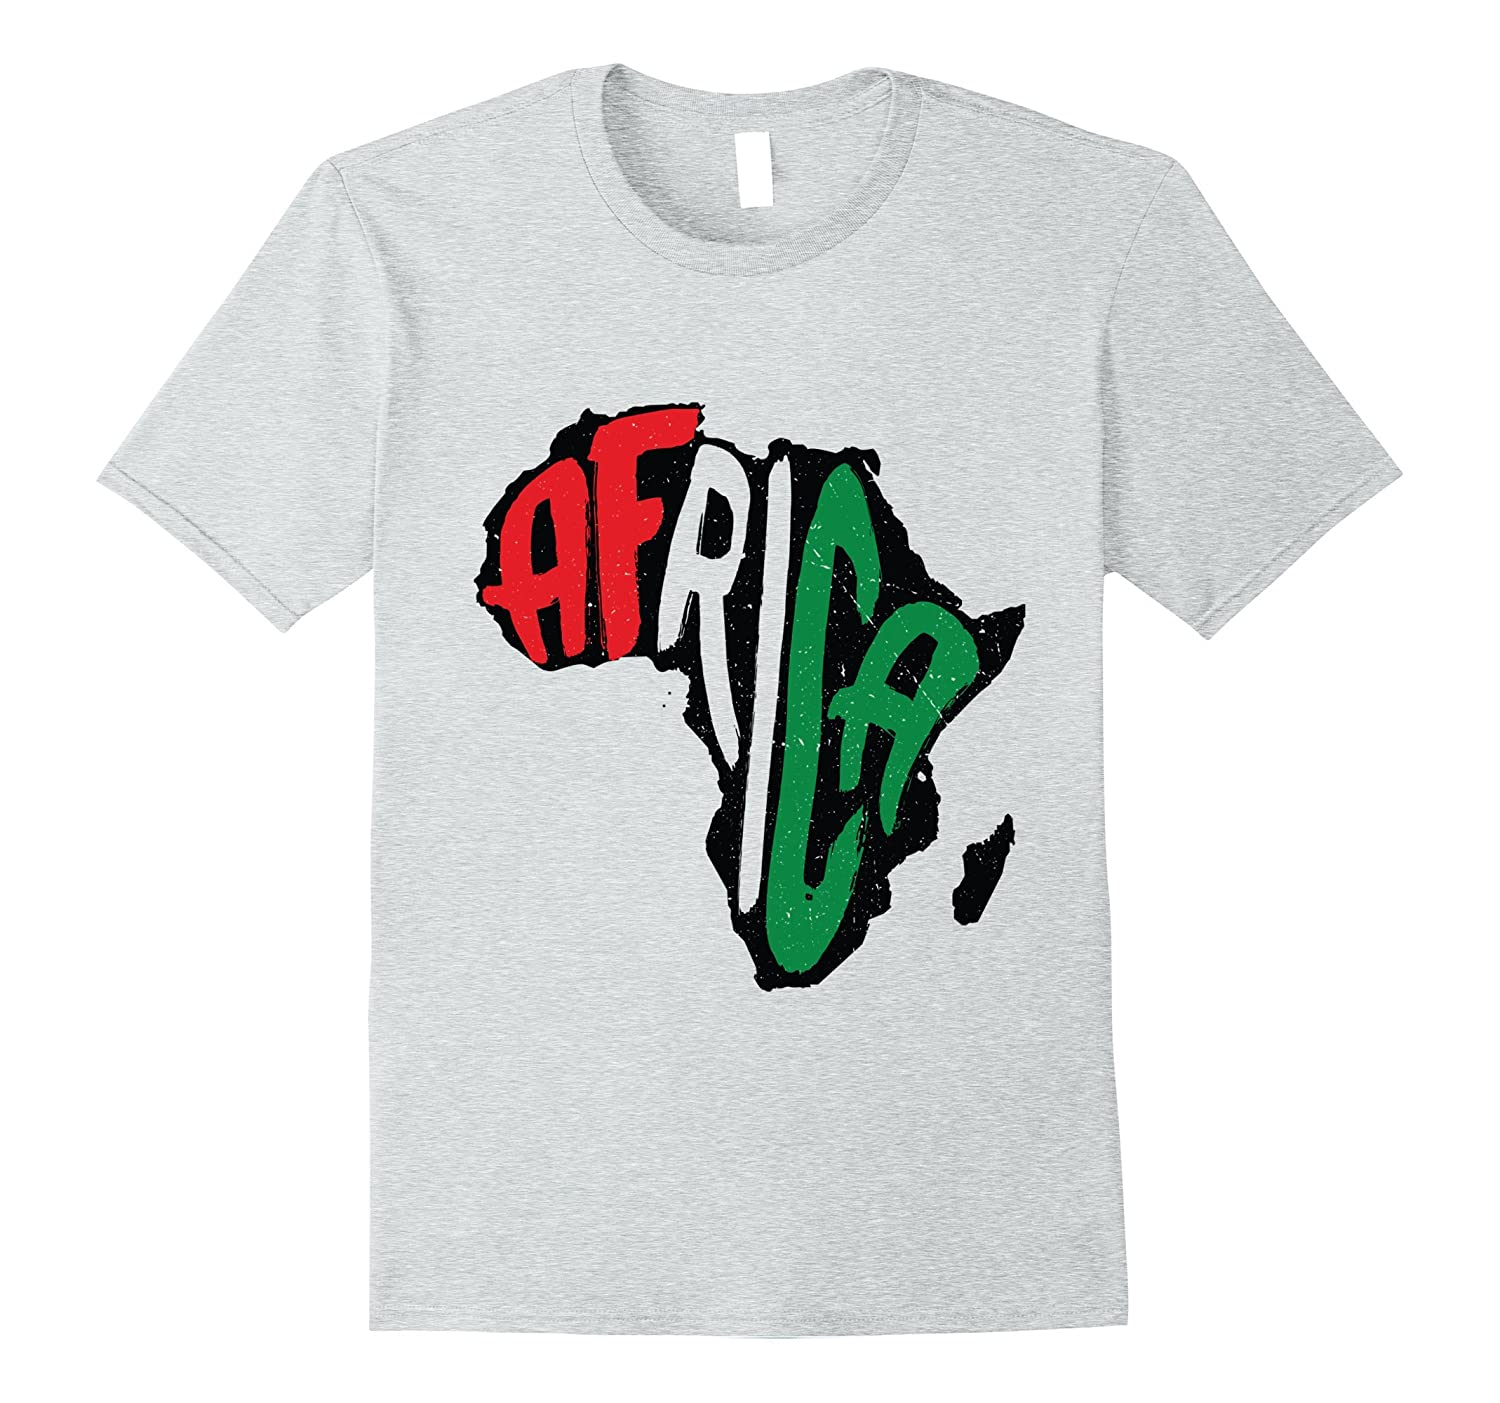 424ccc791 Outline Africa Continent Unity Pan Africa T-Shirt-PL – Polozatee